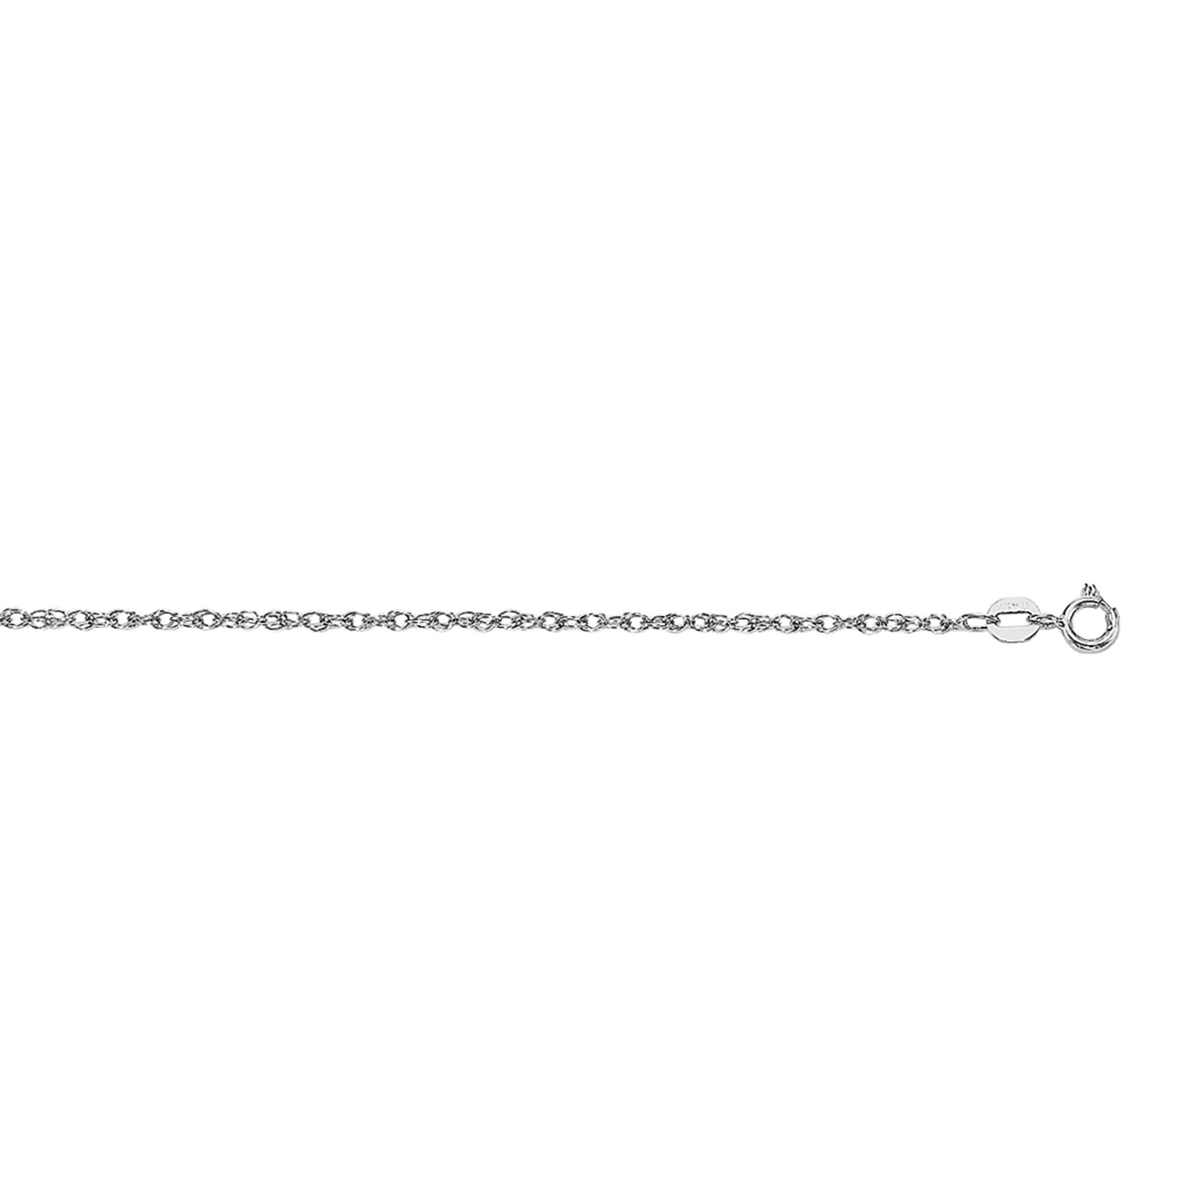 Royal Chain 14 Karat White Gold .75mm Rope Chain On Card